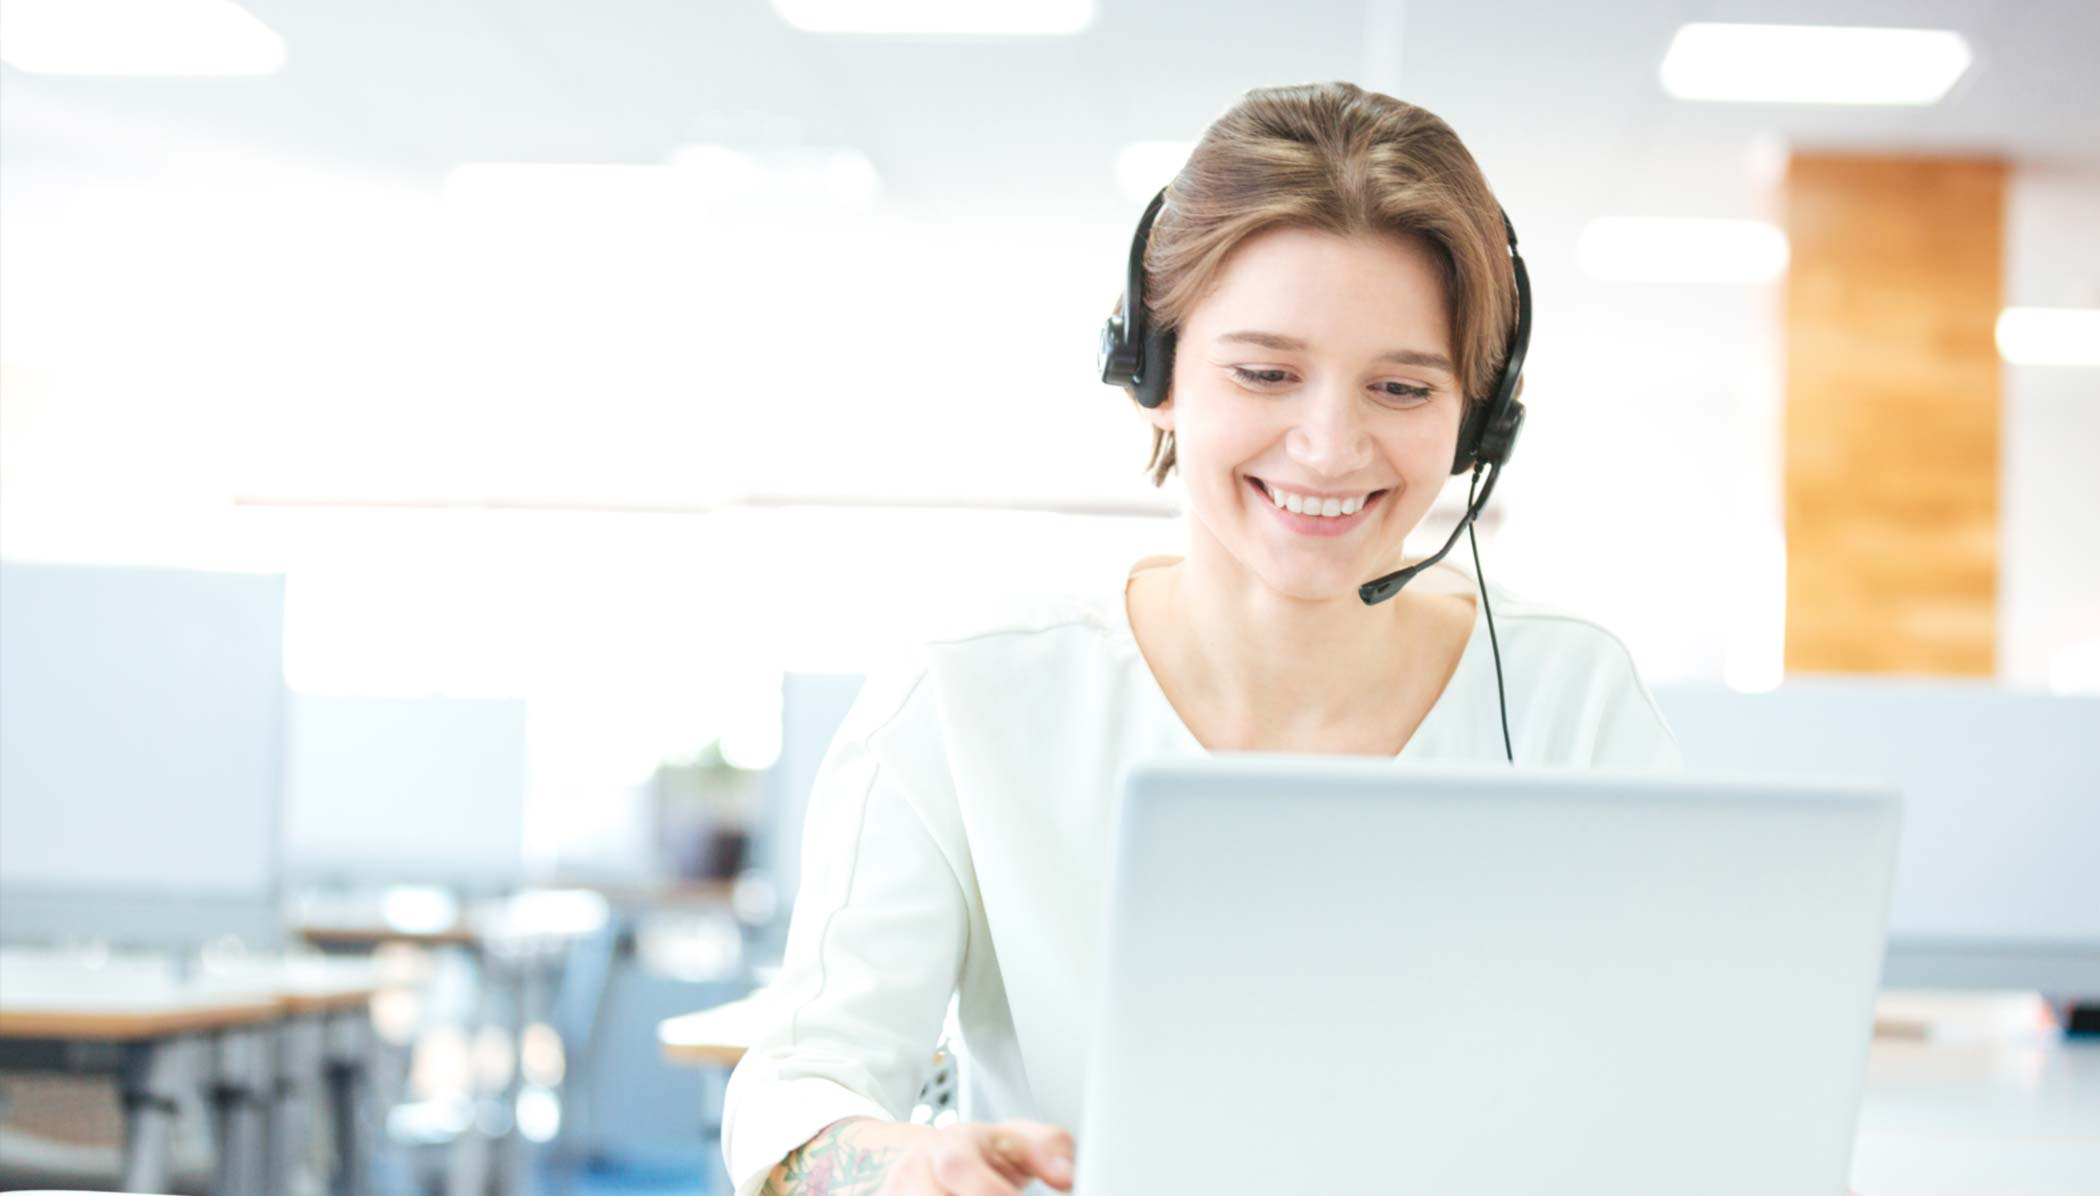 Customer Service Professional answering user requests with the help of CSM portal